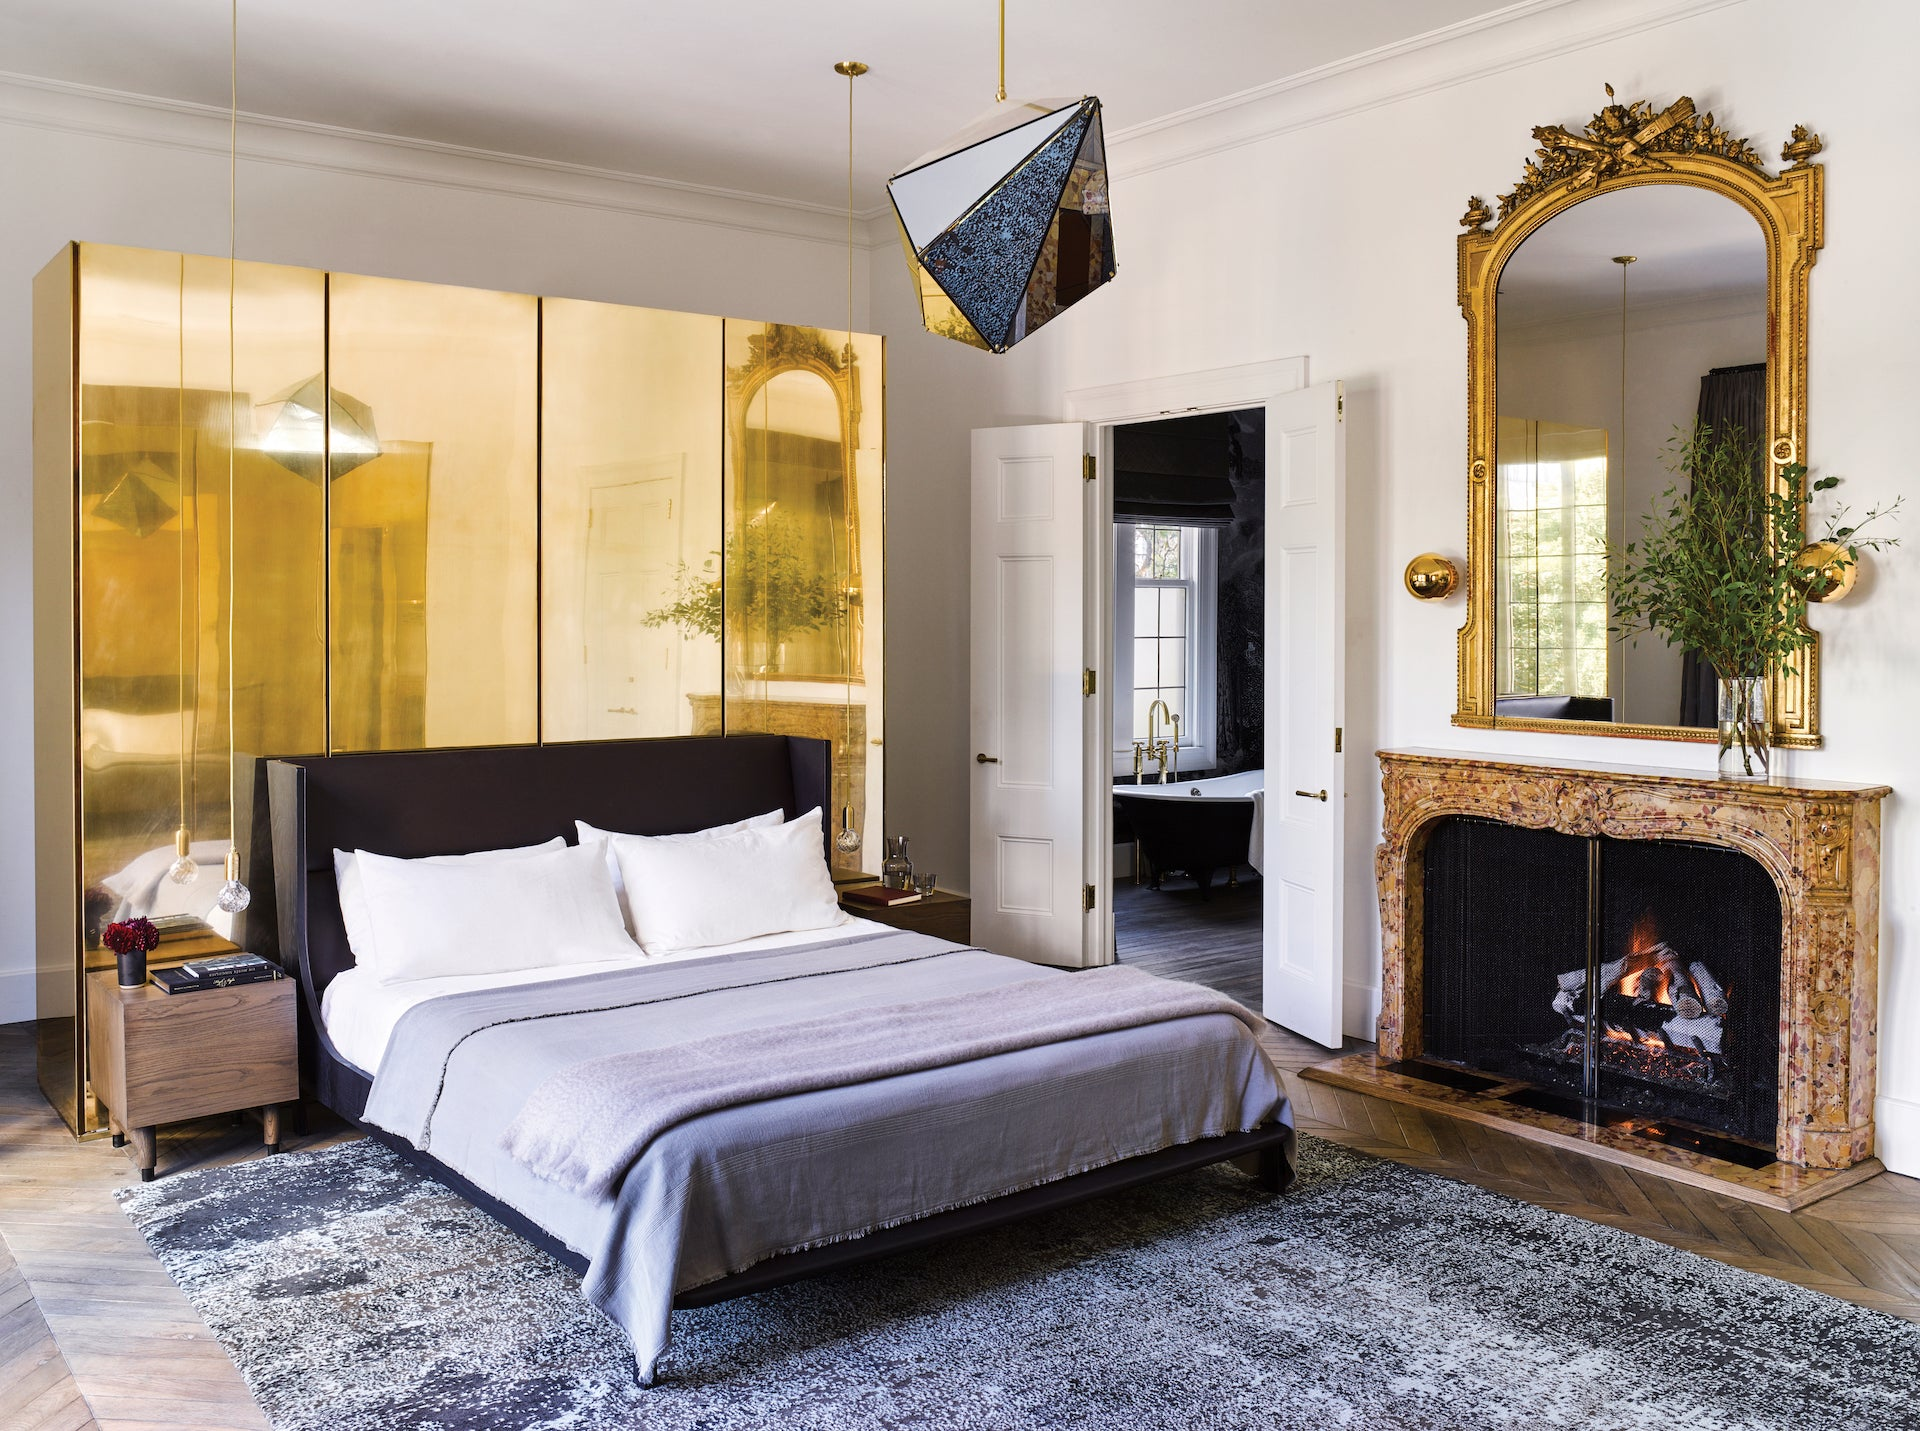 A bedroom in a San Francisco home designed by Hollis. © NICOLEHOLLIS: Curated Interiors by Nicole Hollis, Rizzoli New York, 2020. Photography © Douglas Friedman and Laure Joliet